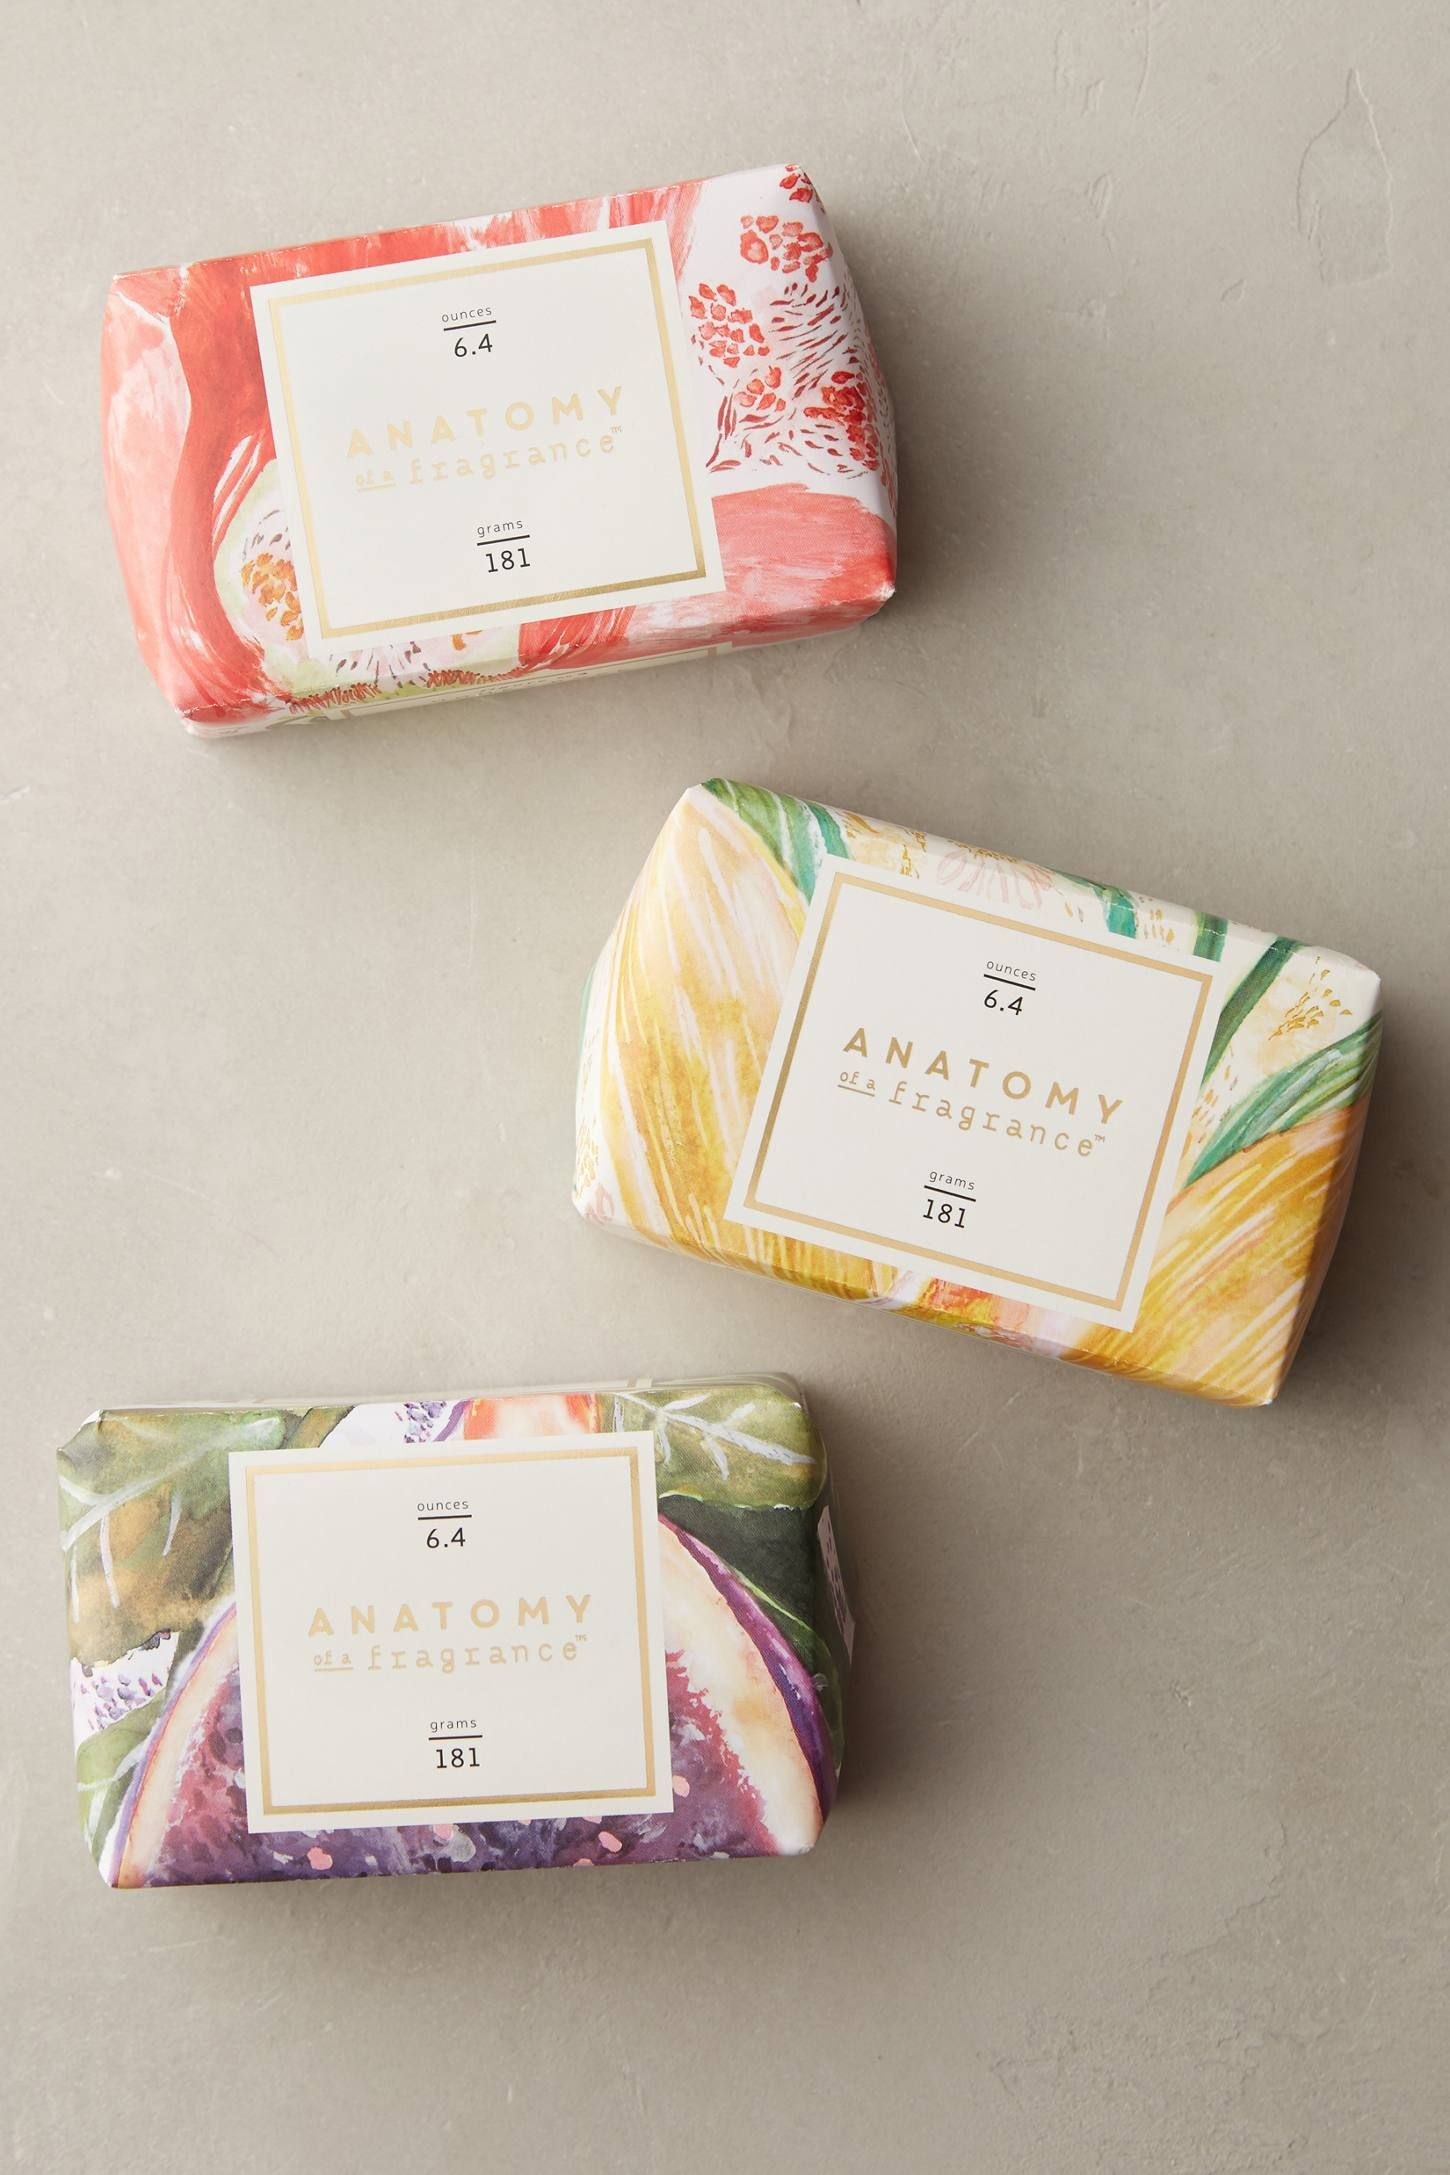 Anatomy Of A Fragrance Bar Soap | Lava Packaging | Pinterest ...